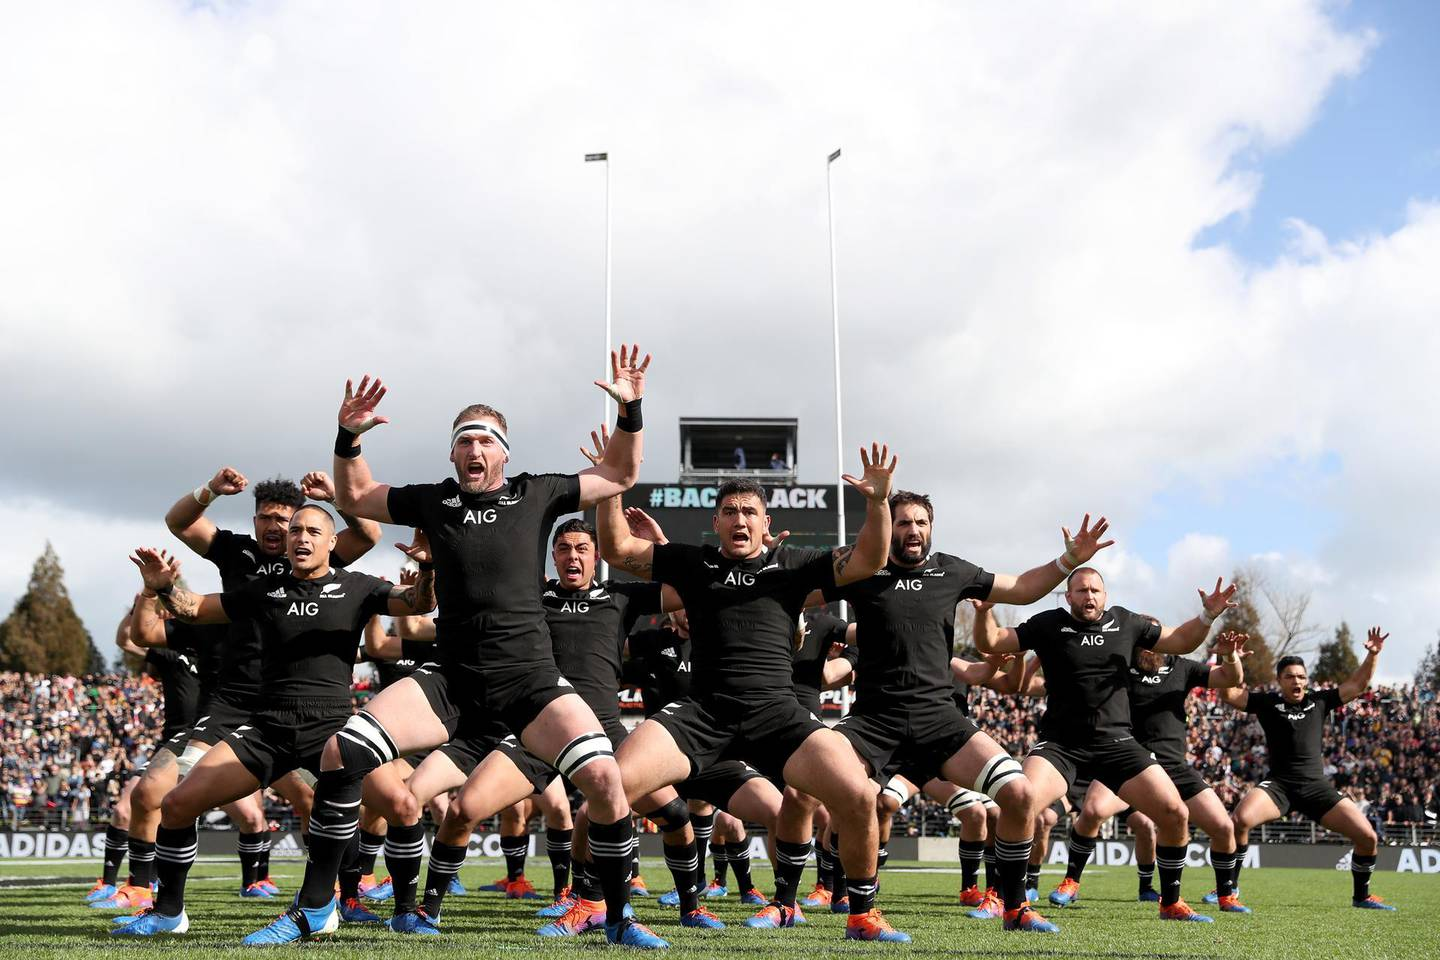 HAMILTON, NEW ZEALAND - SEPTEMBER 07: The All Blacks perform the haka ahead of the rugby Test Match between the New Zealand All Blacks and Tonga at FMG Stadium on September 07, 2019 in Hamilton, New Zealand. (Photo by Hannah Peters/Getty Images)